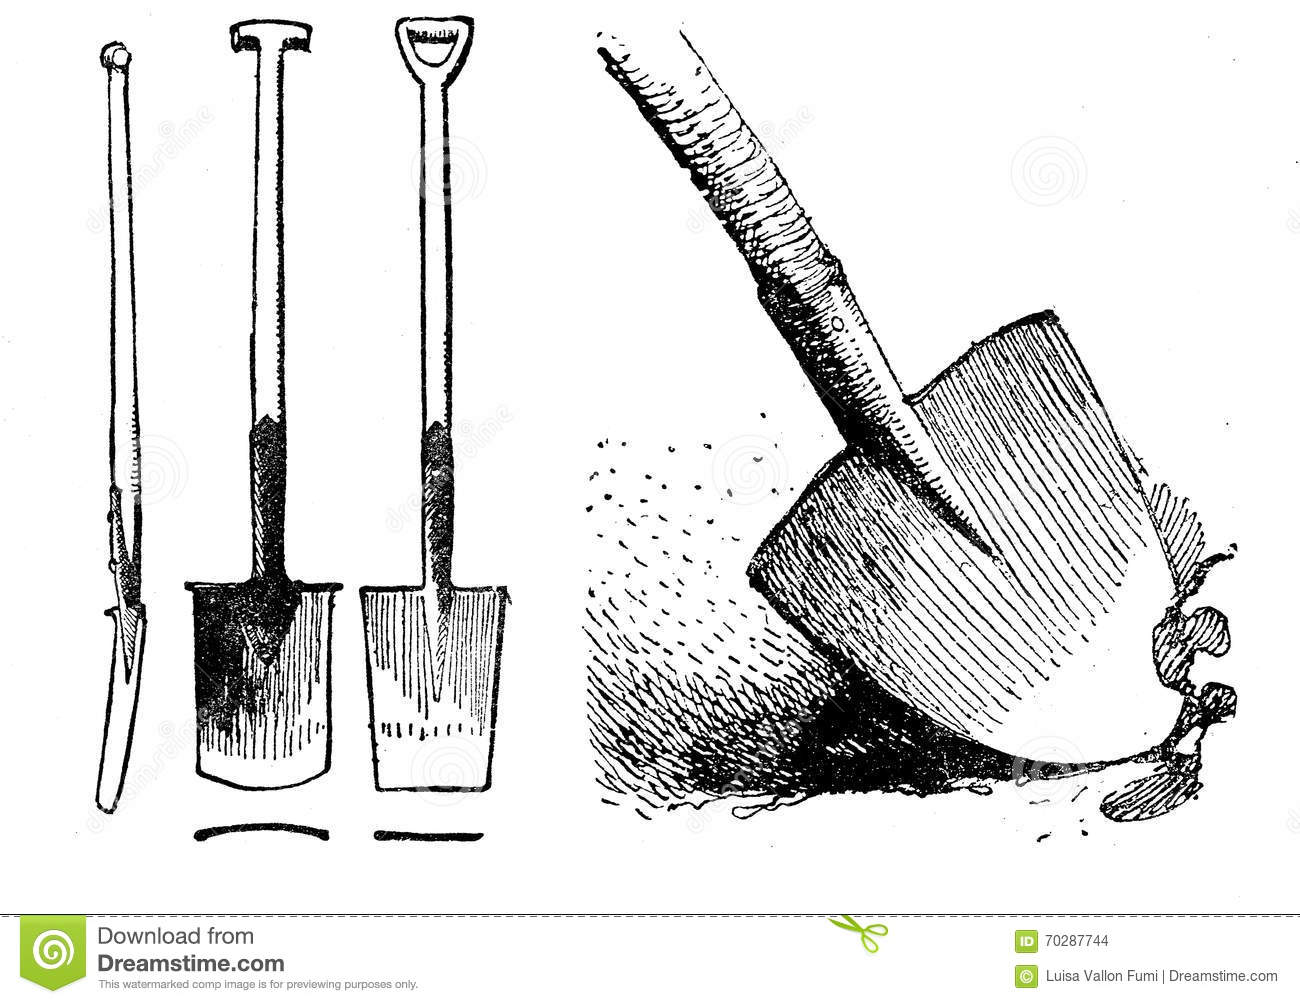 Horticulture vintage illustration different shapes of for Different tools and equipment in horticulture